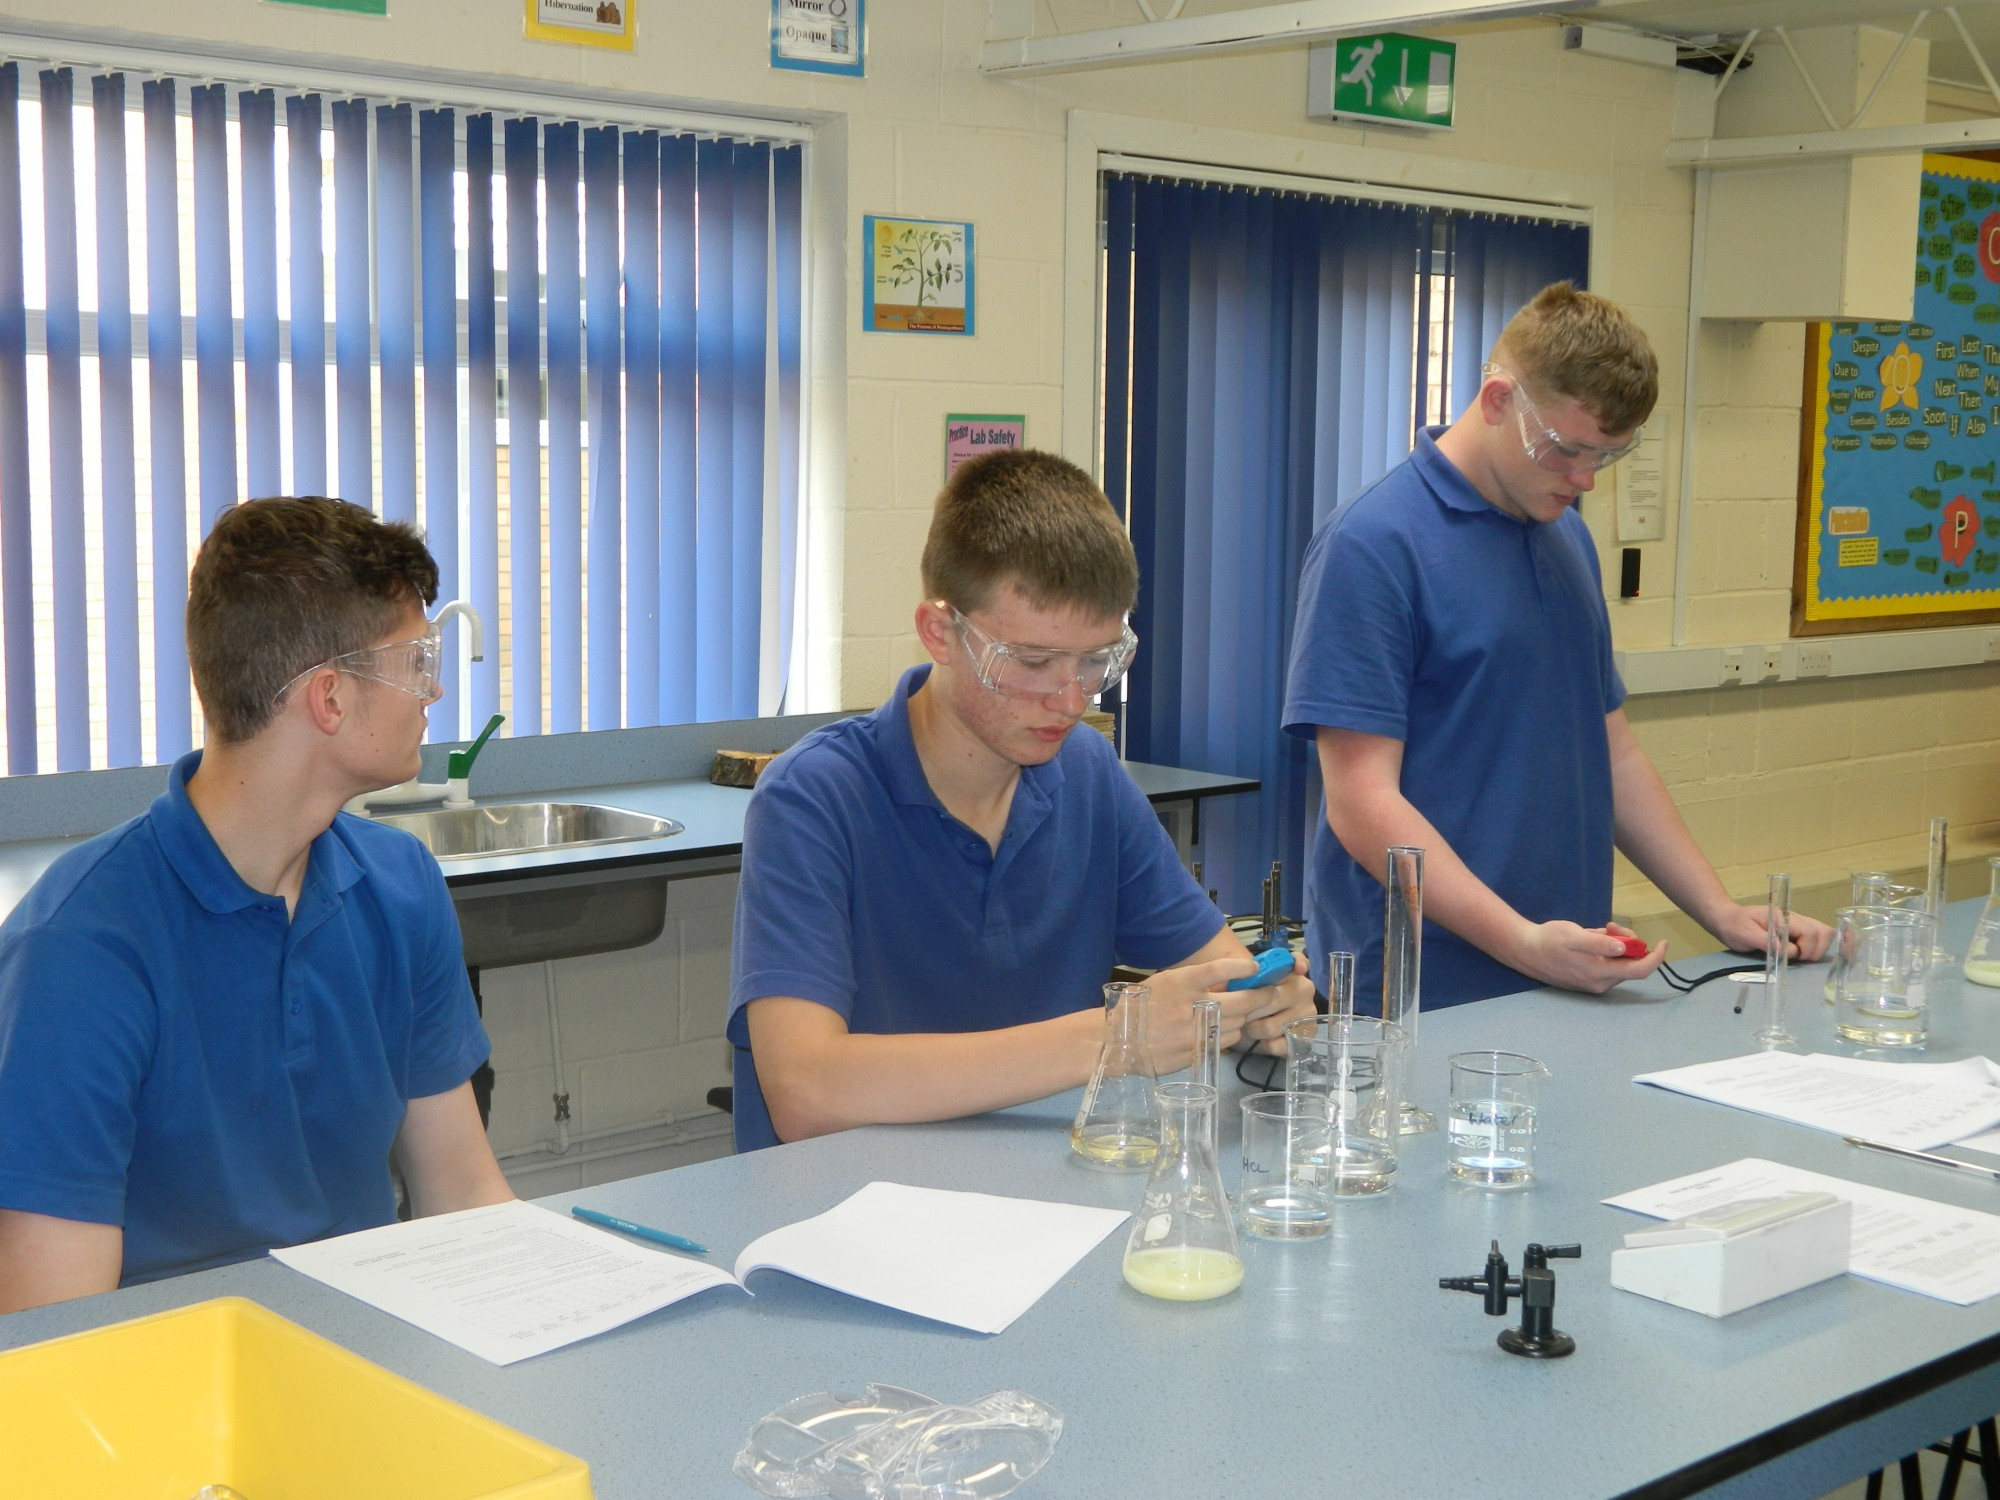 What happens when you mix Sodium Thiosulphate and Hydrochloric Acid?